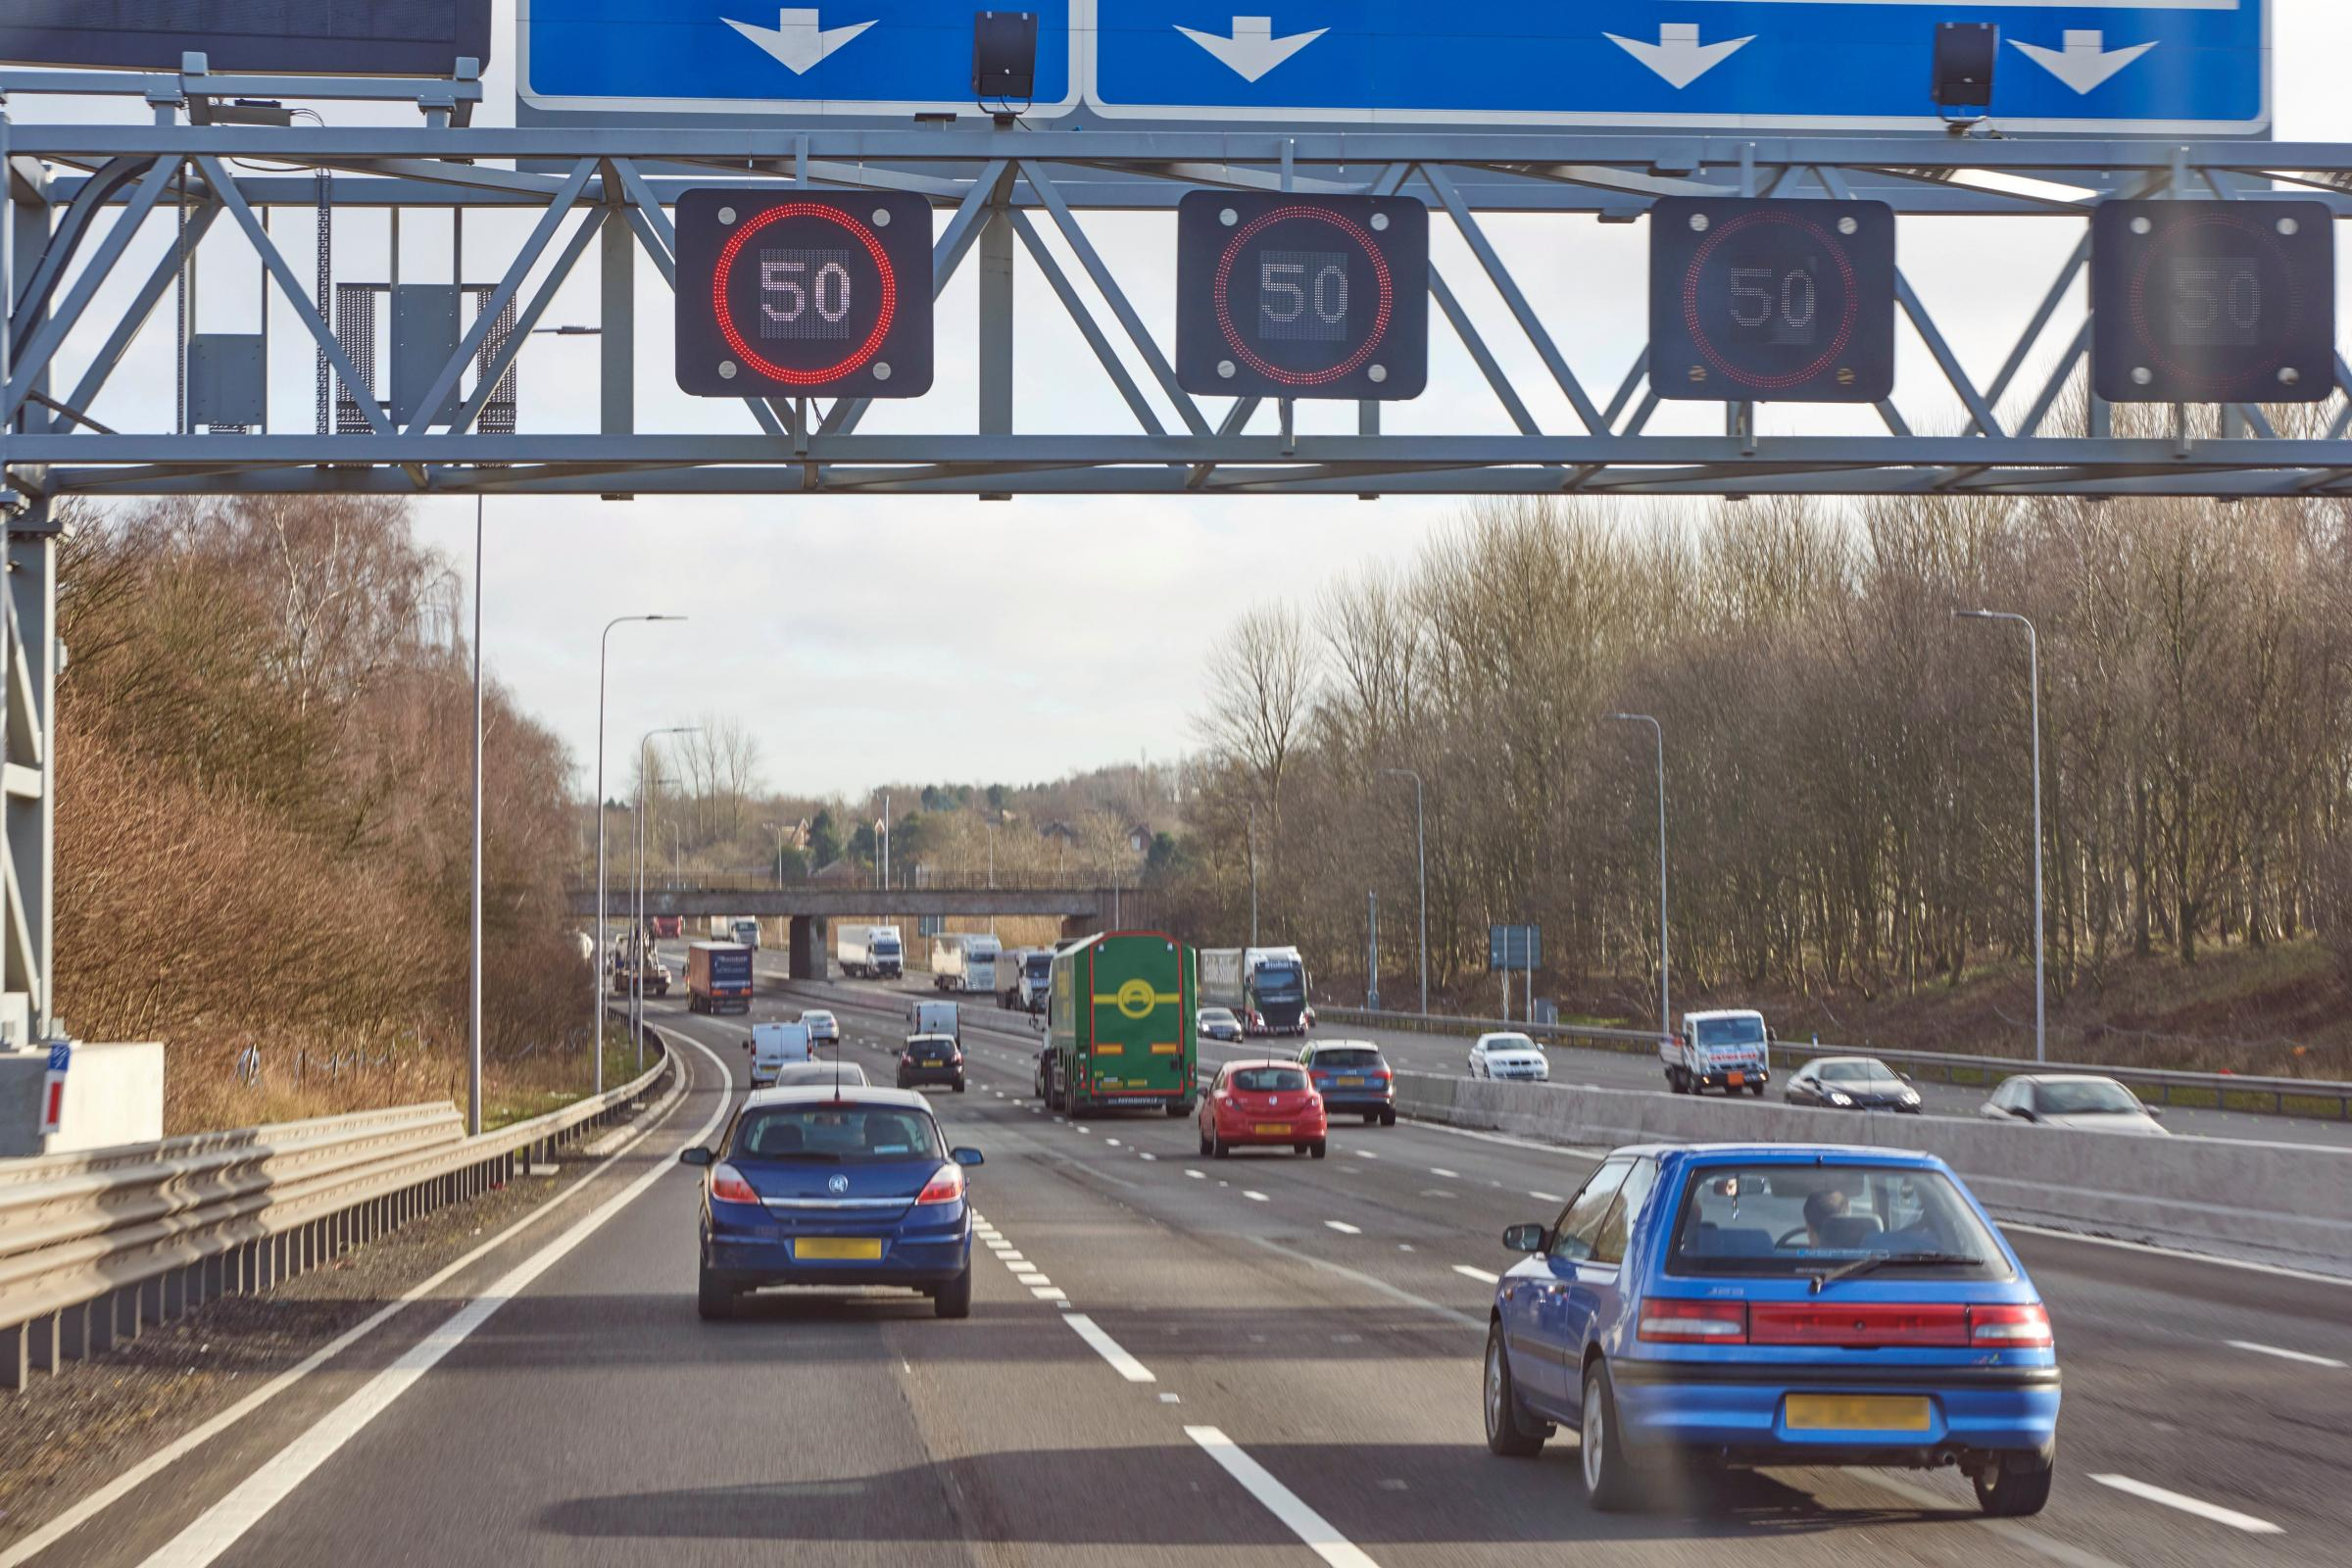 Temporary narrow lanes will be removed tomorrow on a 4-mile stretch of the M60 as Highways England works towards completing its smart motorway upgrade.